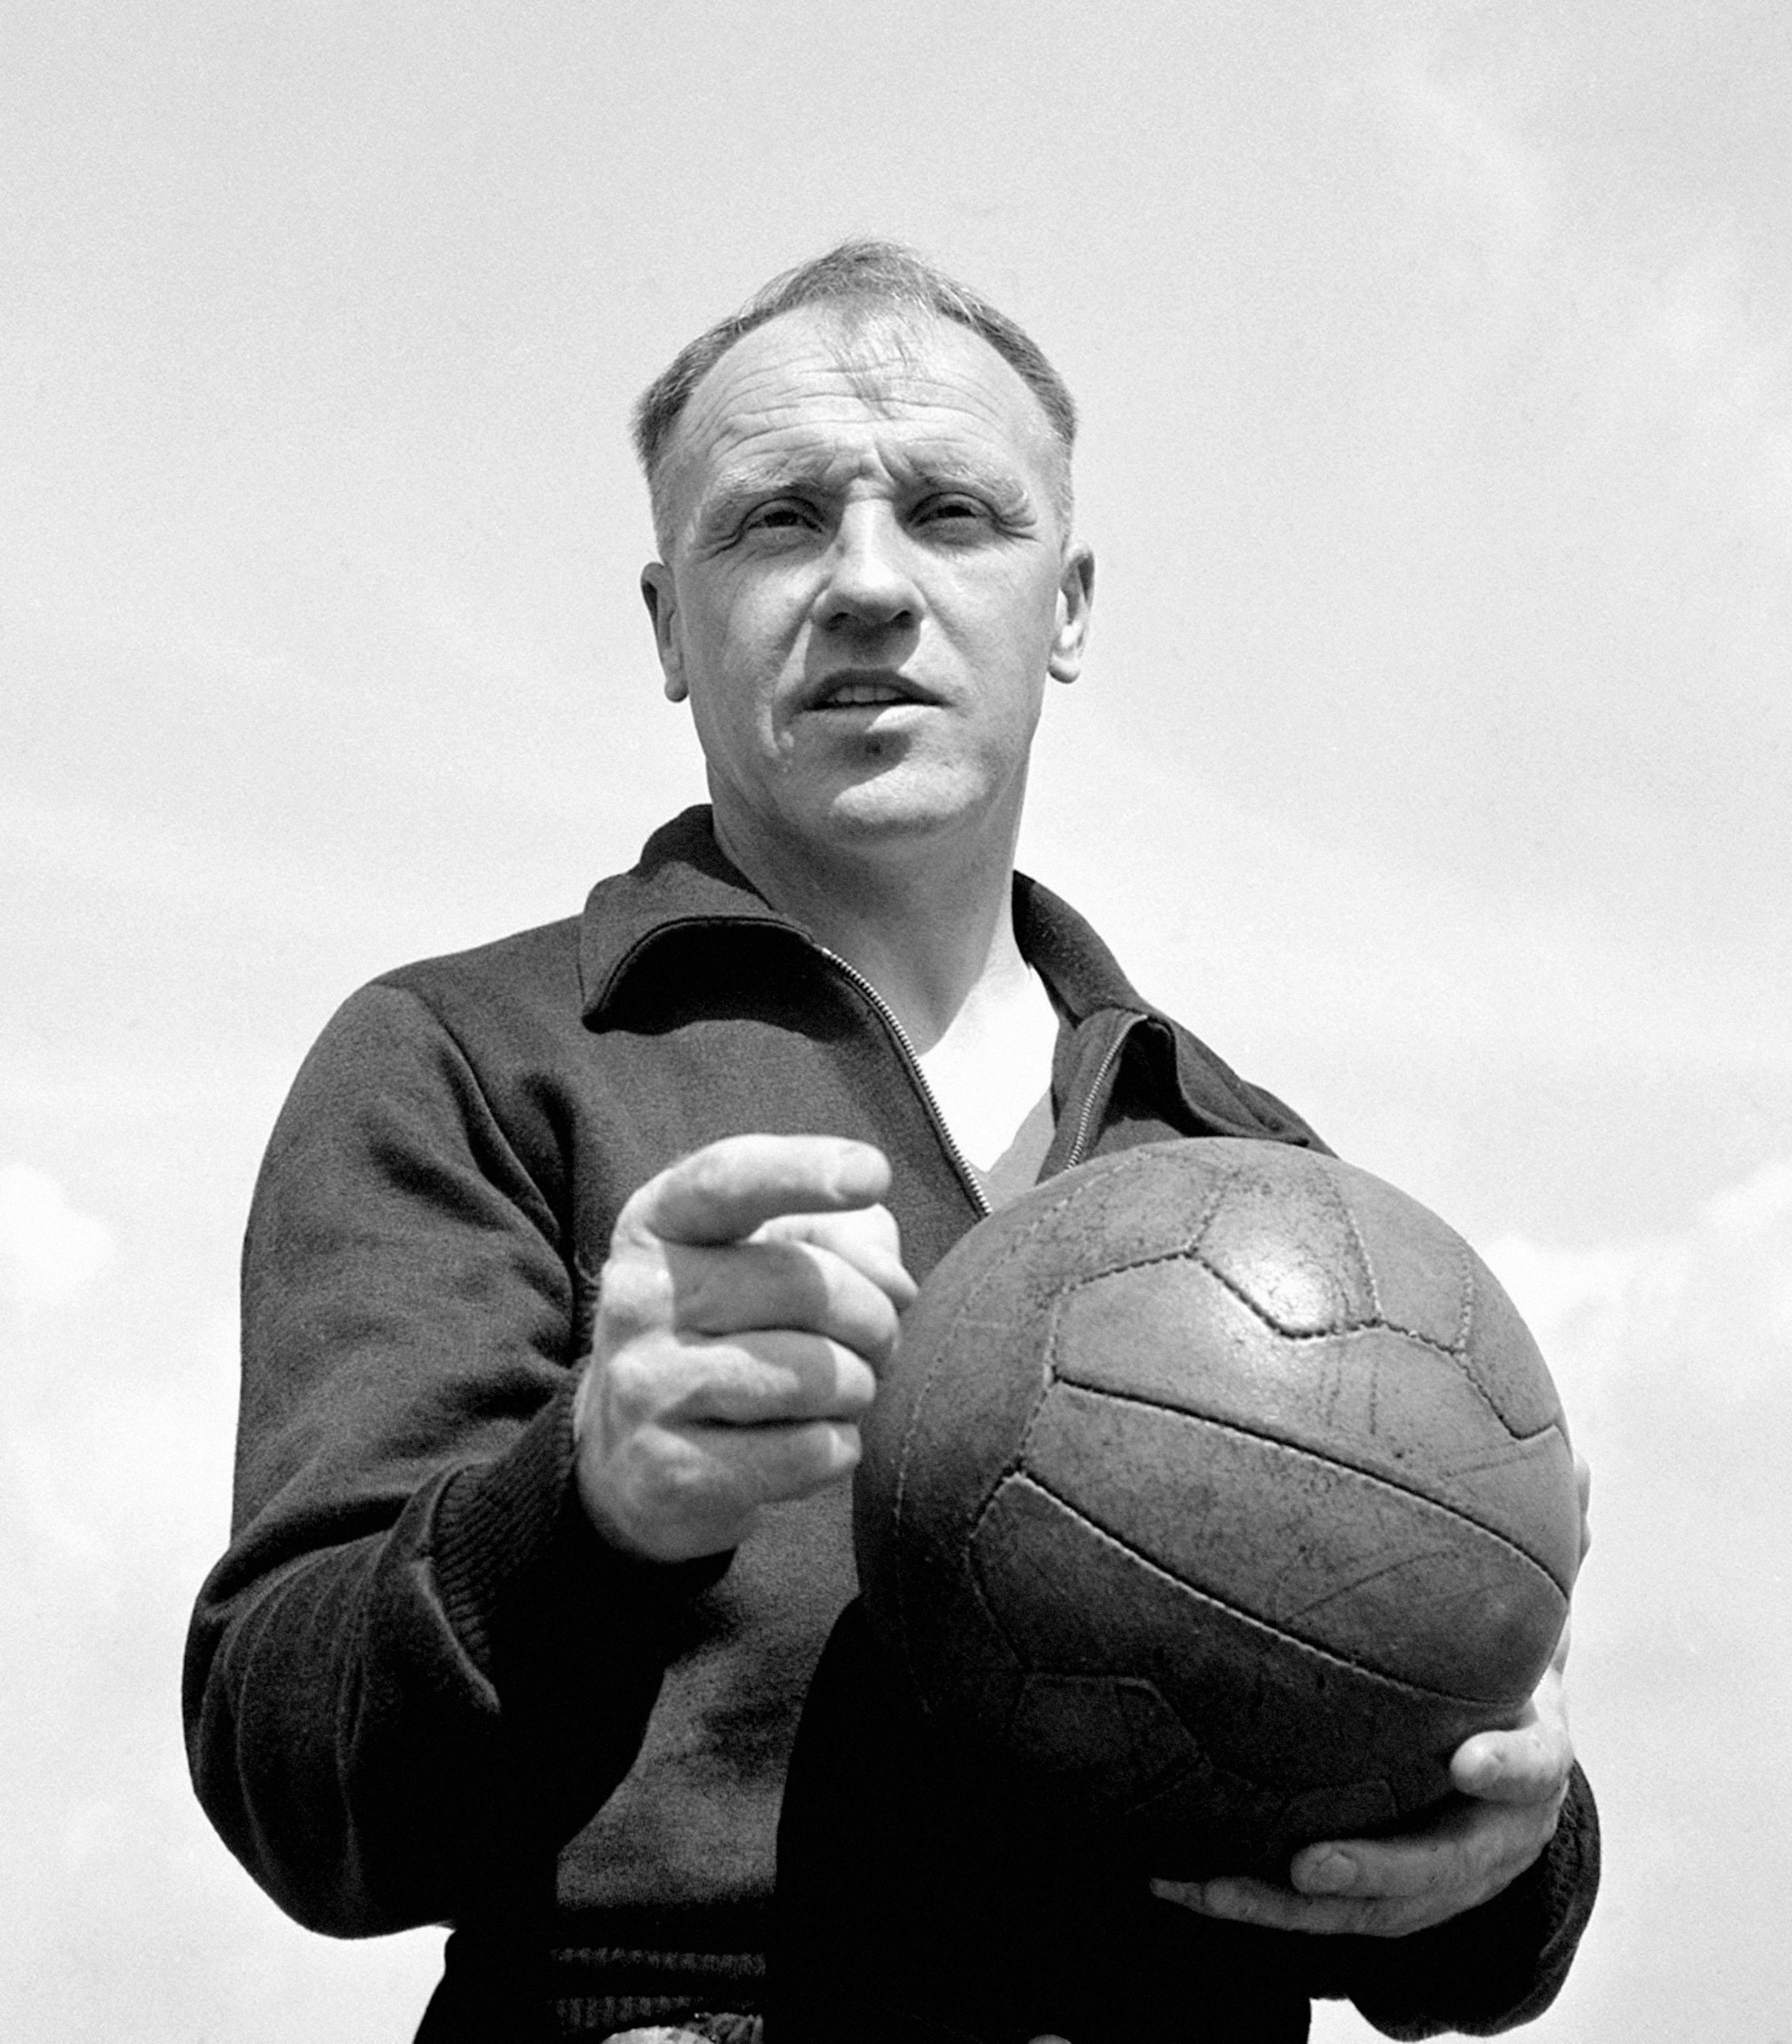 Bill Shankly has just signed the first ever contract of a managerial career taking in Carlisle, Workington, Grimsby, Huddersfield, and Merseyside. It is to be a three-year contract for Liverpool.